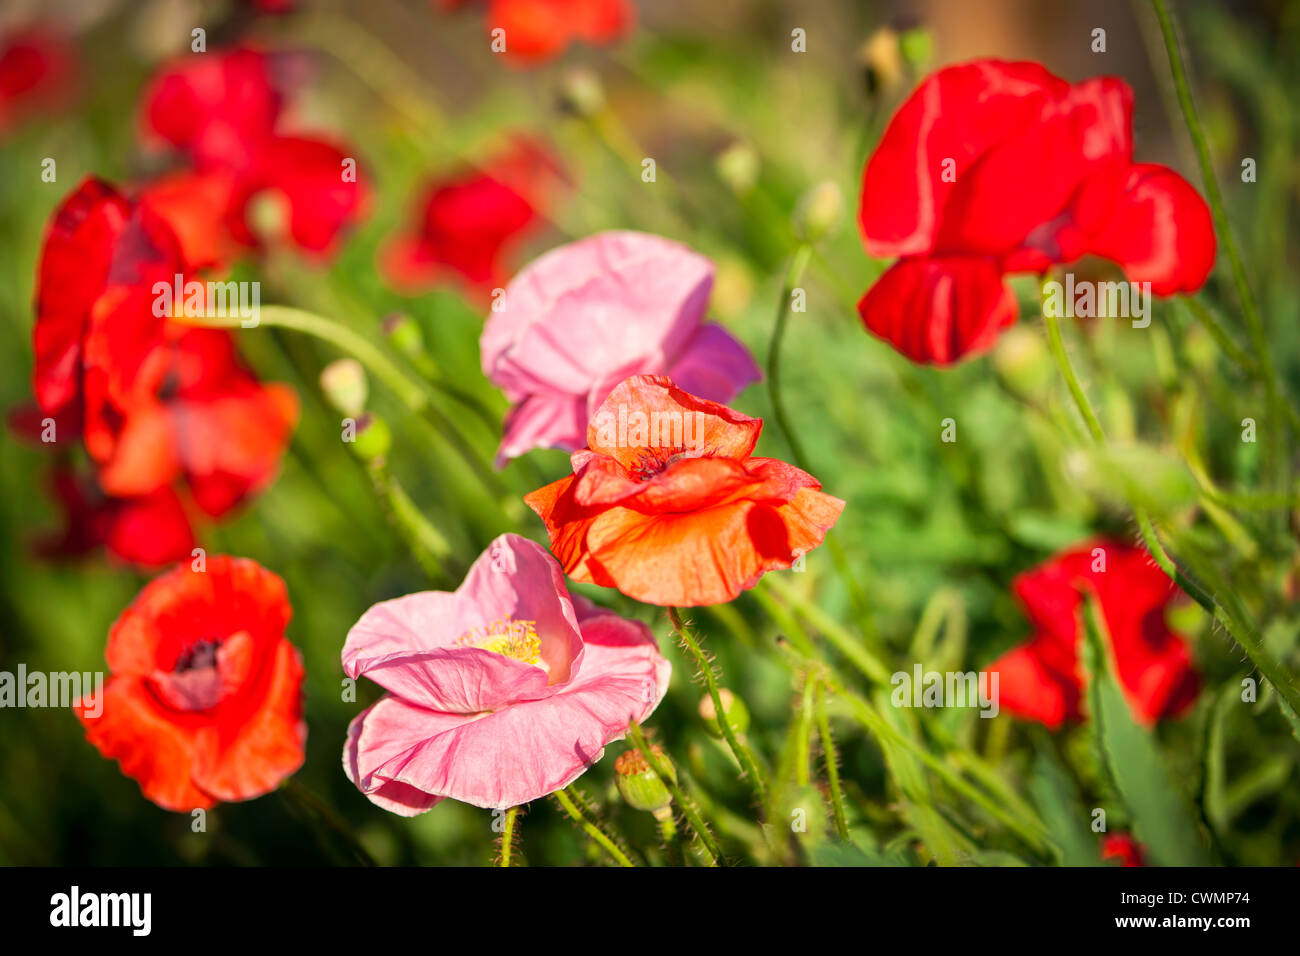 Red and pink poppies in summer garden - Stock Image